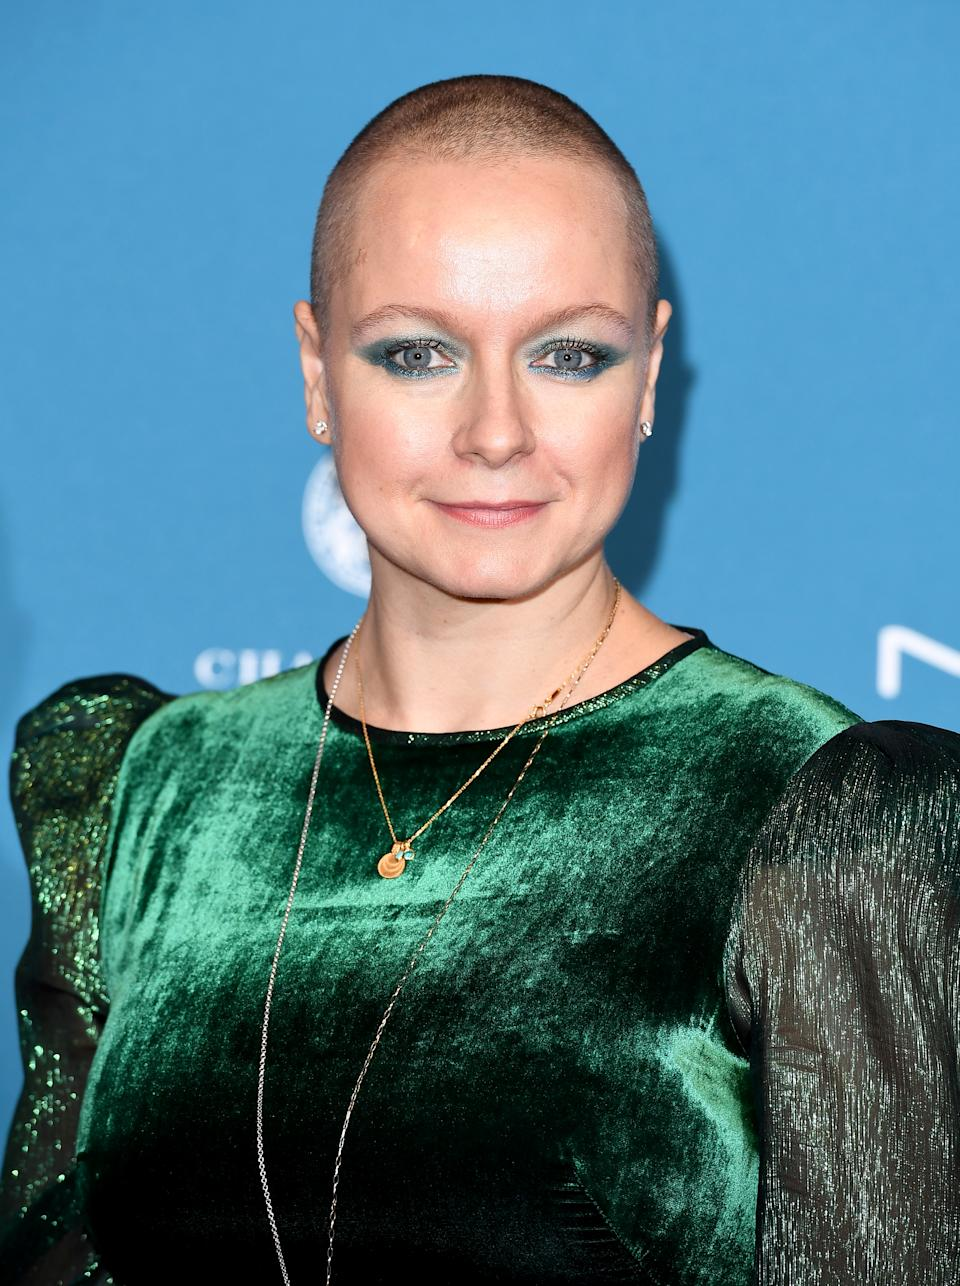 LONDON, ENGLAND - DECEMBER 02:  Samantha Morton attends the 21st British Independent Film Awards at Old Billingsgate on December 02, 2018 in London, England. (Photo by Jeff Spicer/Getty Images)